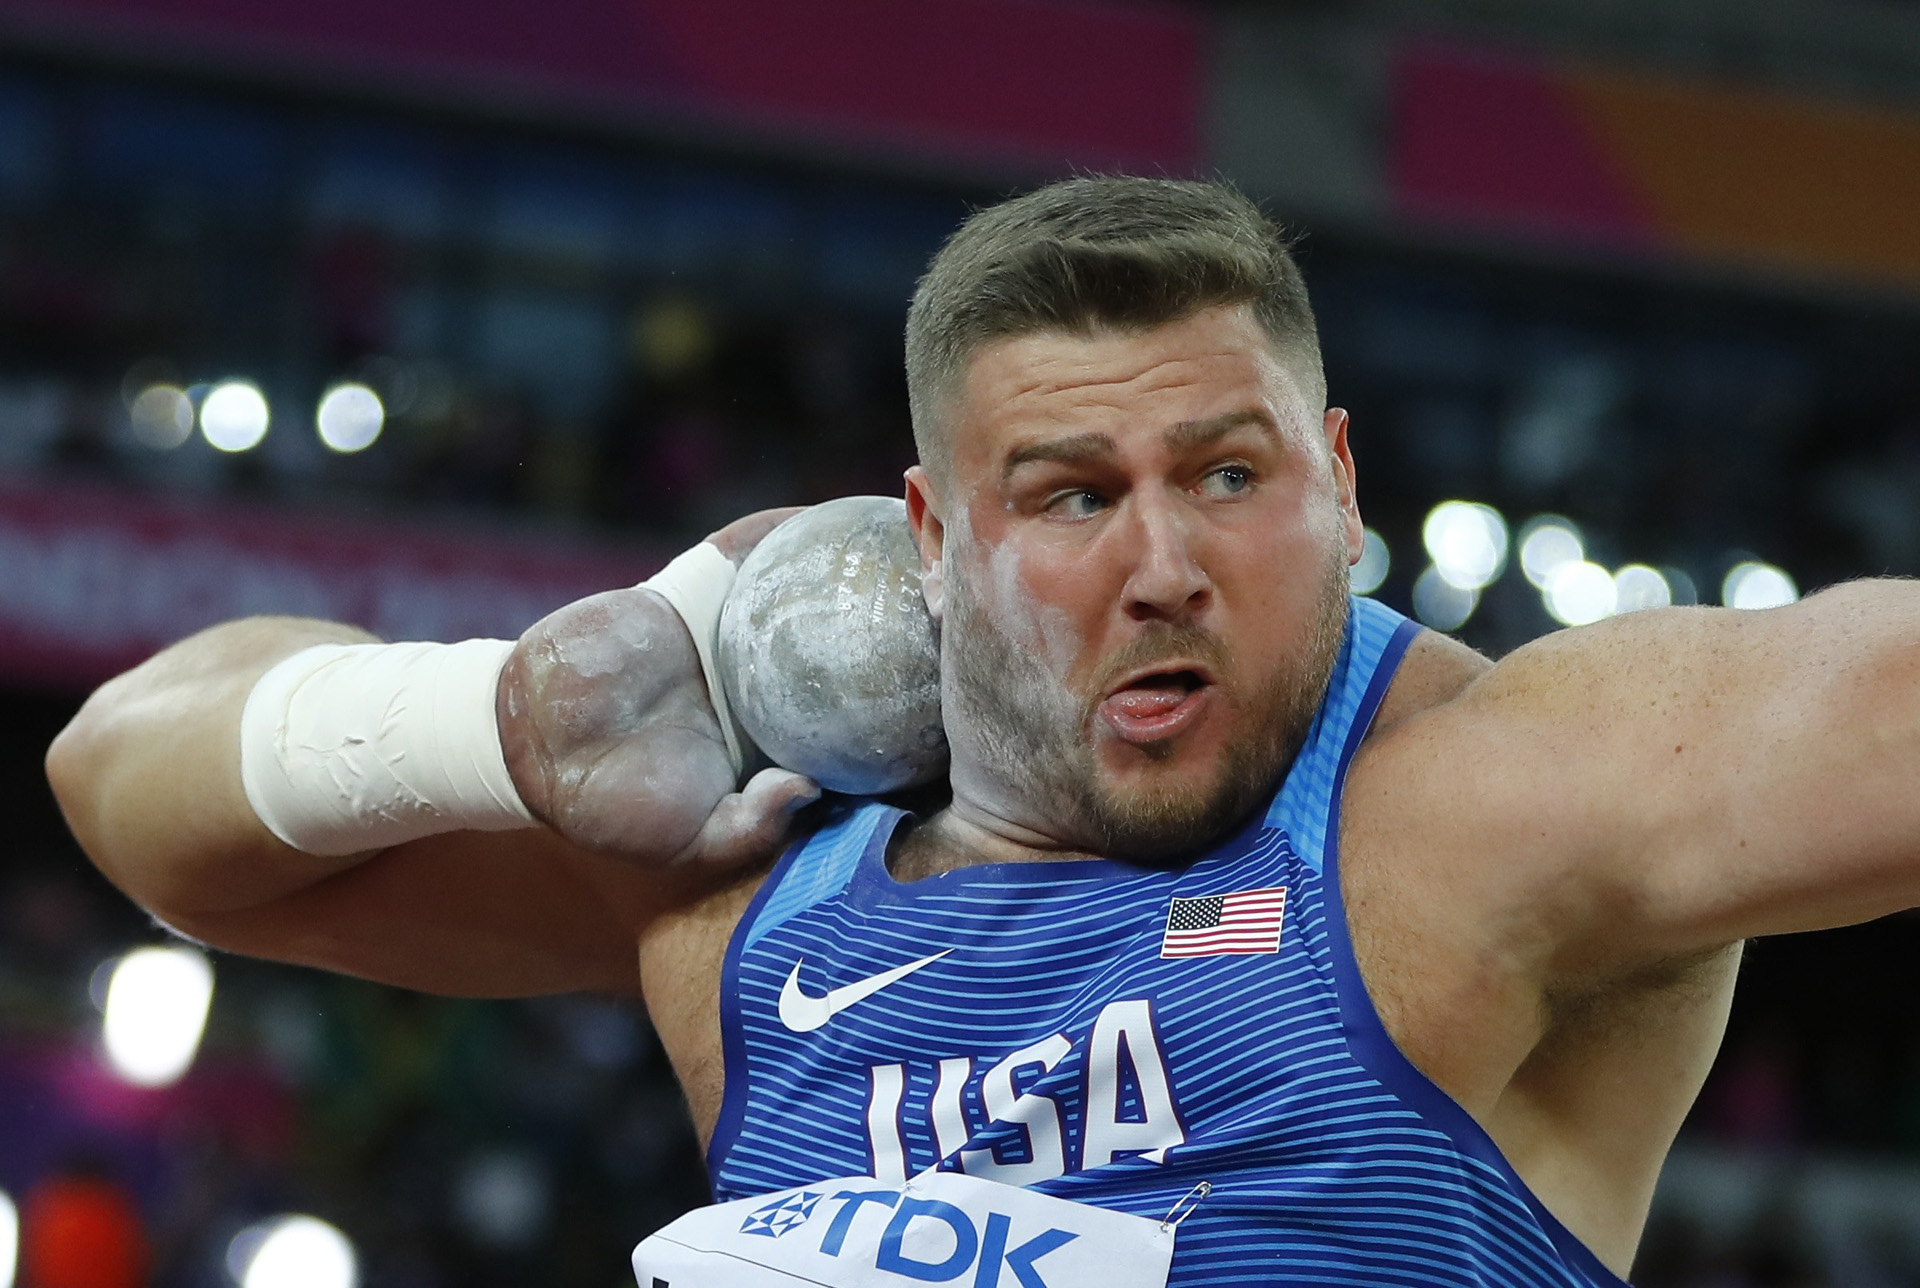 Athletics – World Athletics Championships – Men's Shot Put Final – London Stadium, London, Britain – August 6, 2017. Joe Kovacs of the U.S. in action. REUTERS/Kai Pfaffenbach